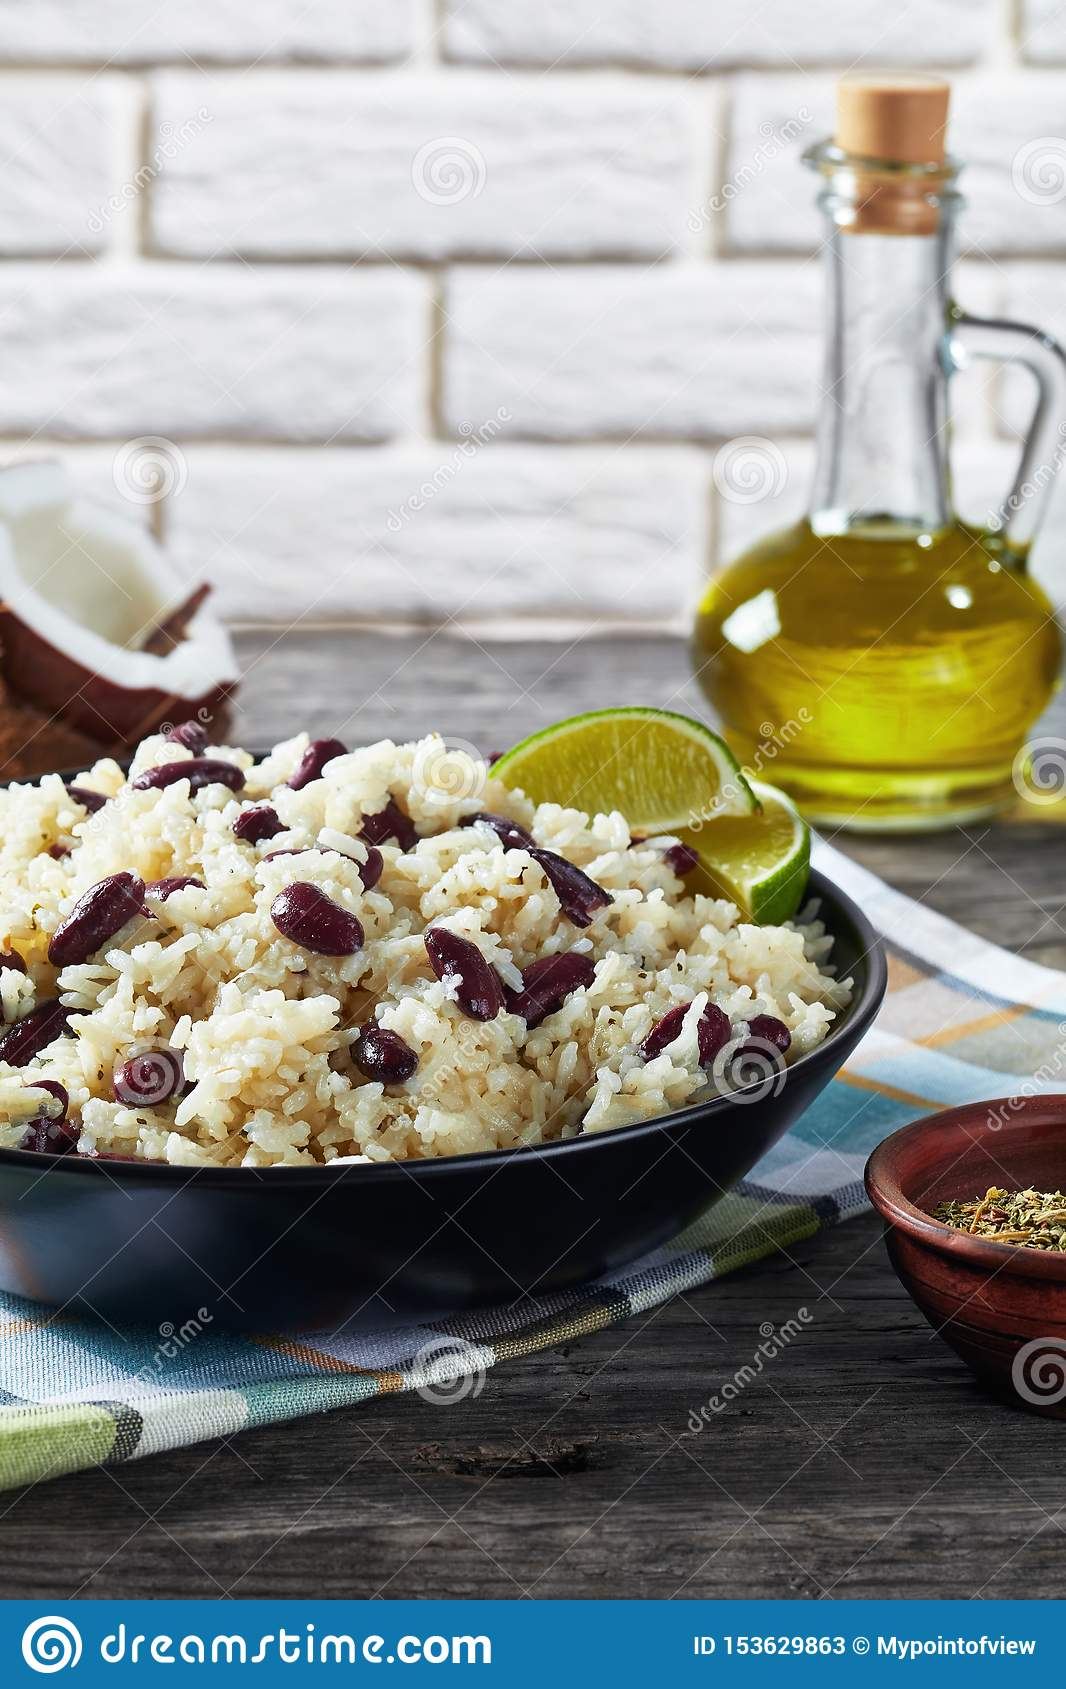 Caribbean Rice and Red Beans in a bowl